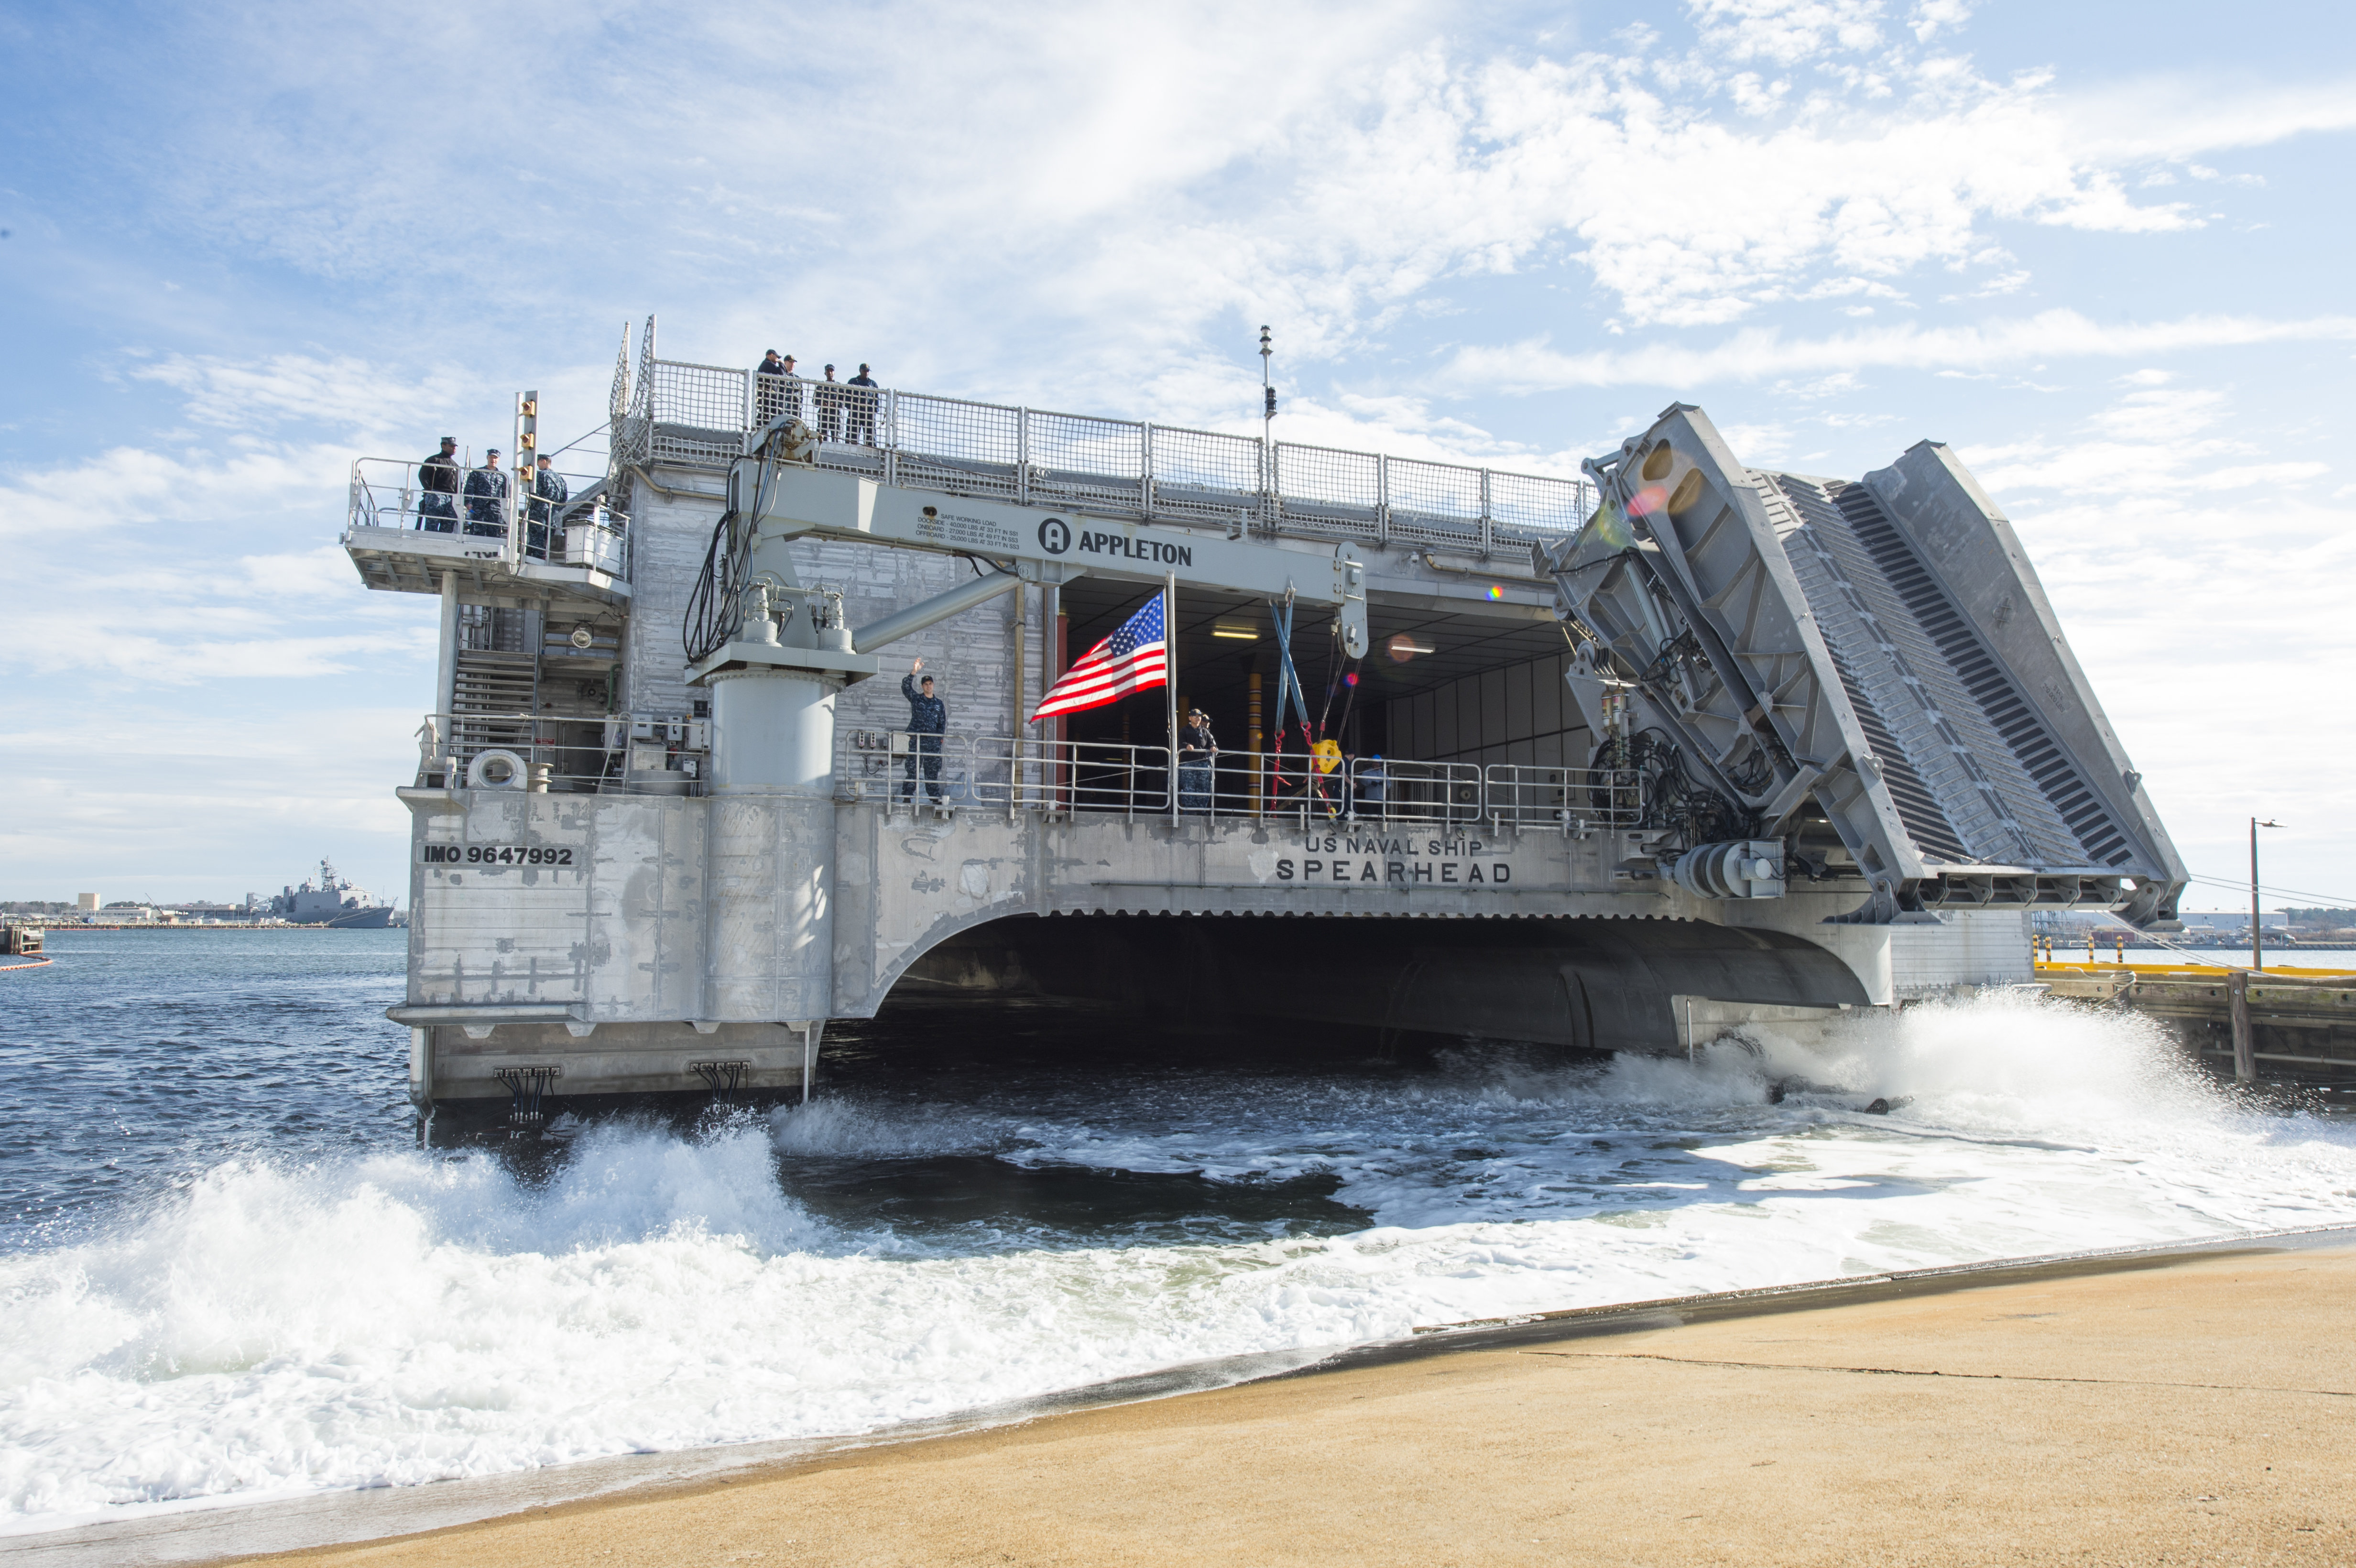 VIRGINIA BEACH, Va. (Dec. 28, 2014) The joint high-speed vessel USNS Spearhead (JHSV-1) departs Joint Expeditionary Base Little Creek-Fort Story. Spearhead is deploying to the U.S. 6th Fleet area of responsibility to support maritime security efforts and to help build partnerships in the Gulf of New Guinea and off the coast of West Africa. (U.S. Navy photo by Mass Communication Specialist 3rd Class Desmond Parks/Released)